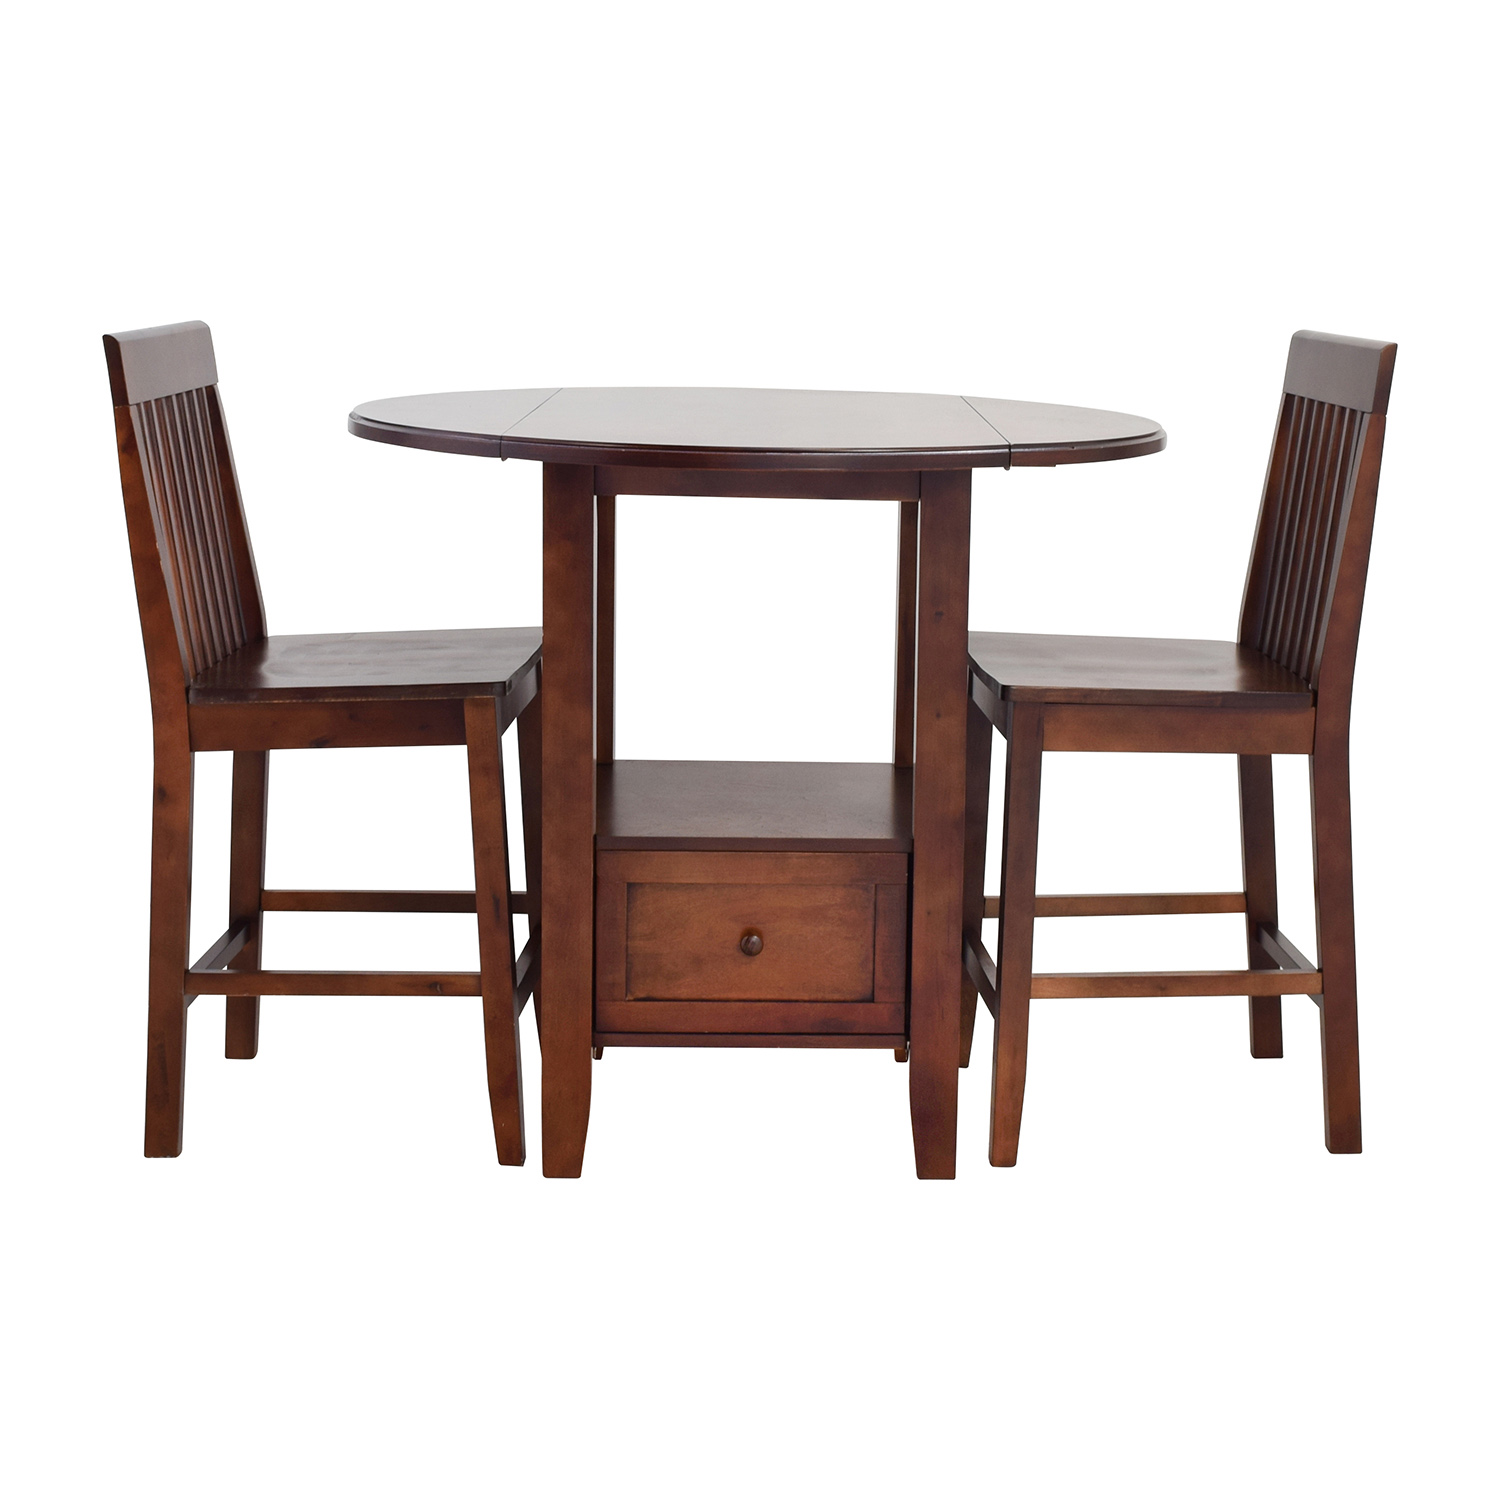 Threshold Pub Table Set sale